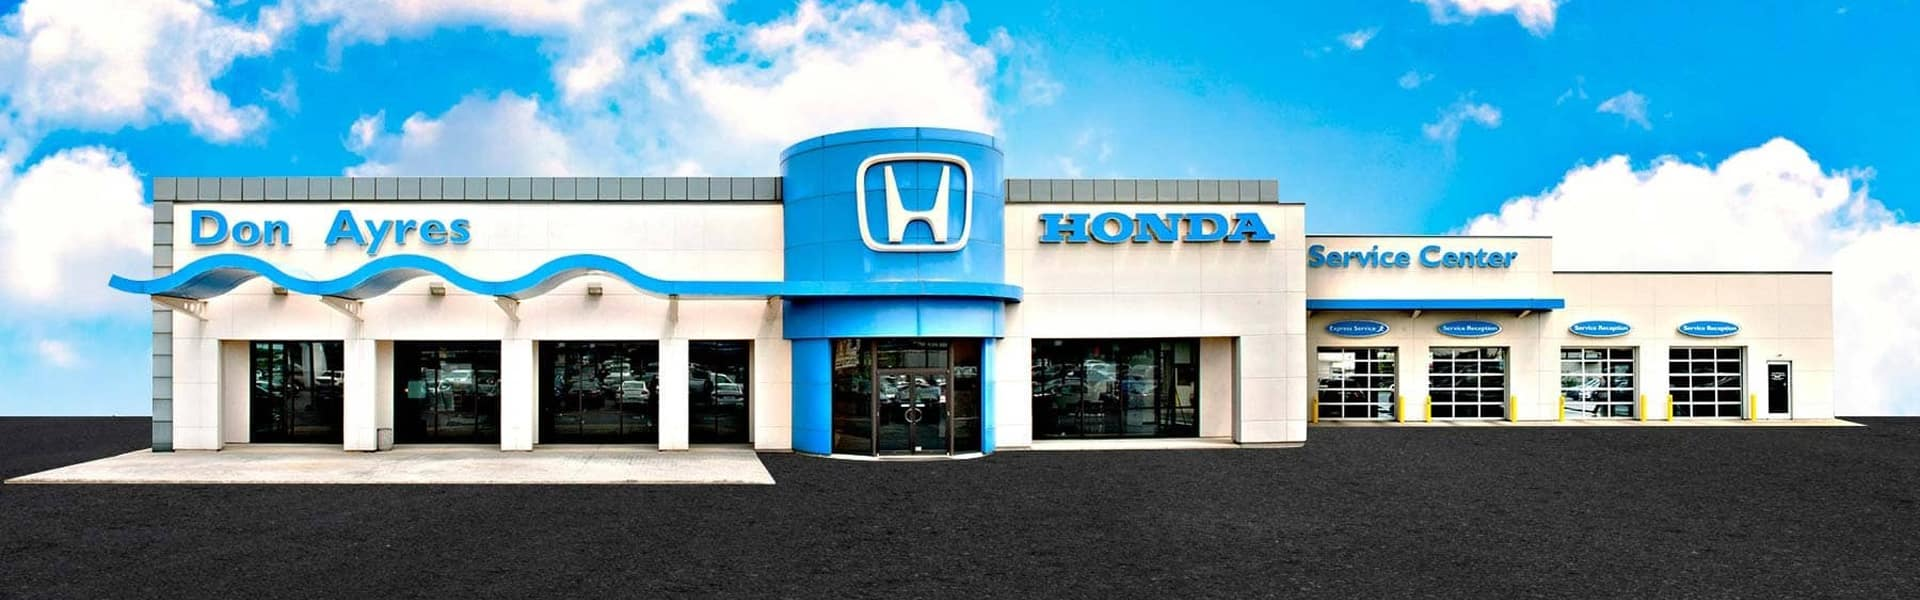 Used Car Inspection >> New Honda and Used Car Dealership in Fort Wayne | Don Ayres Honda